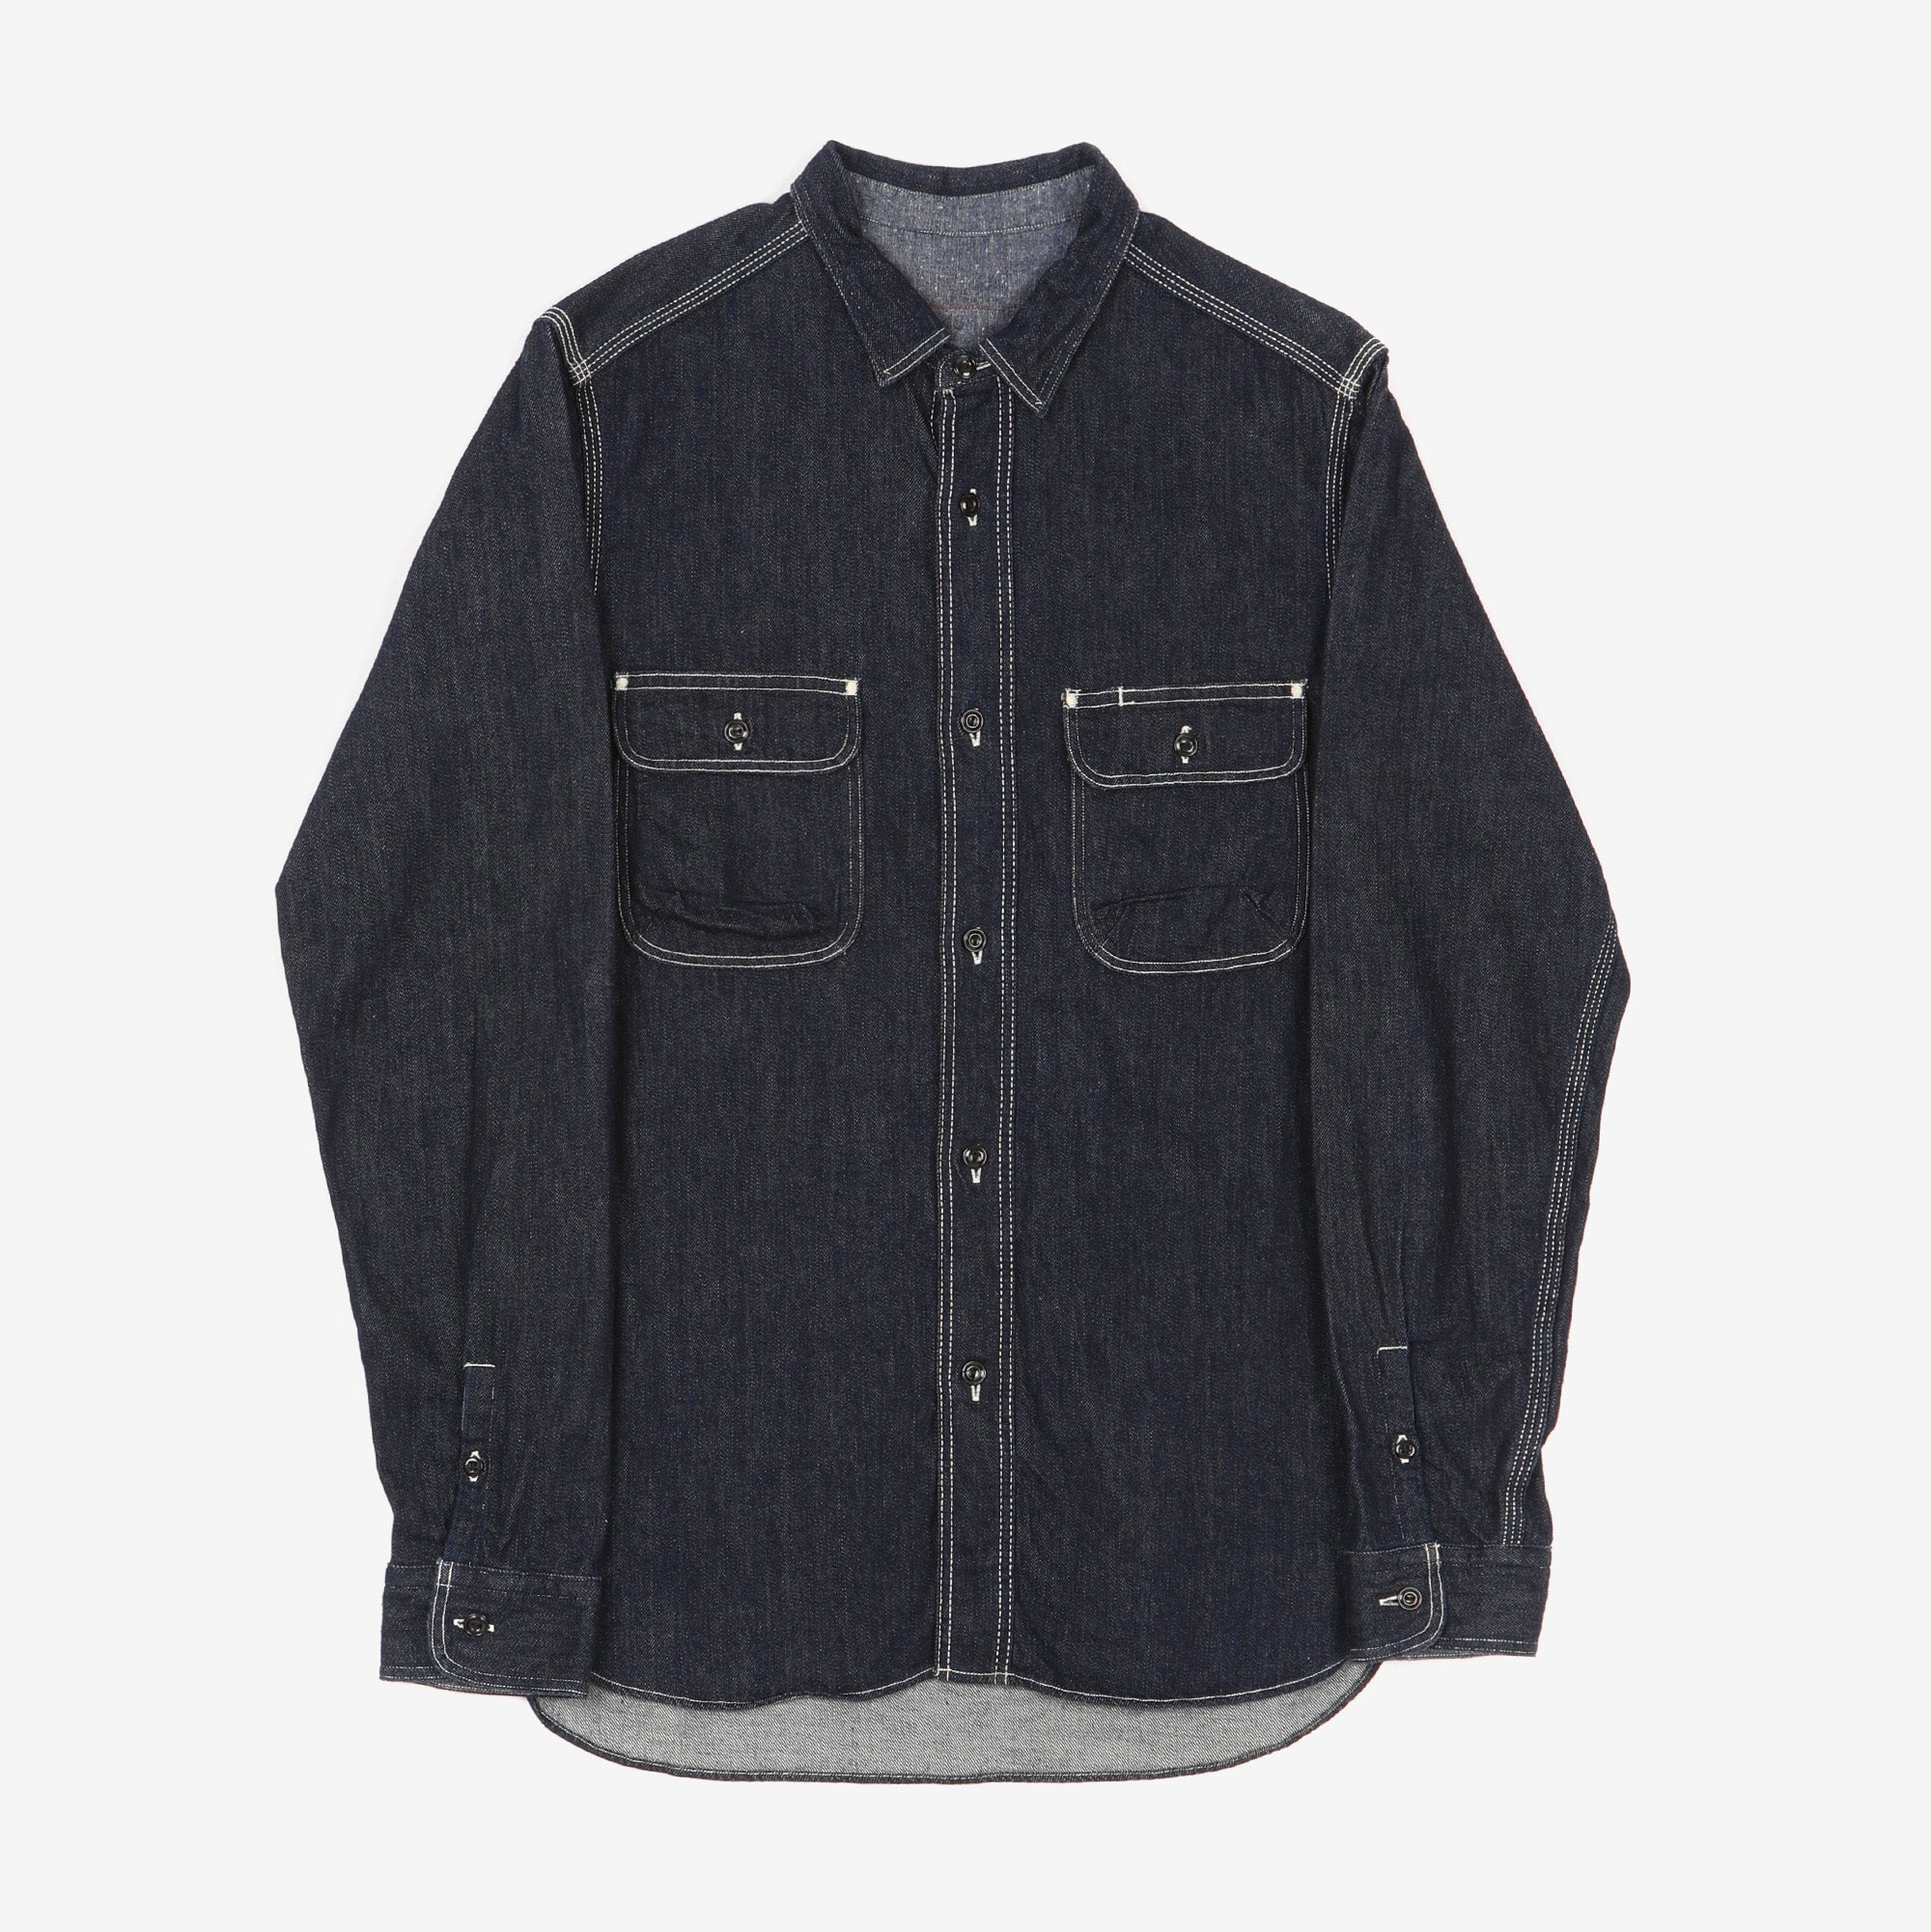 8oz Denim Work Shirt